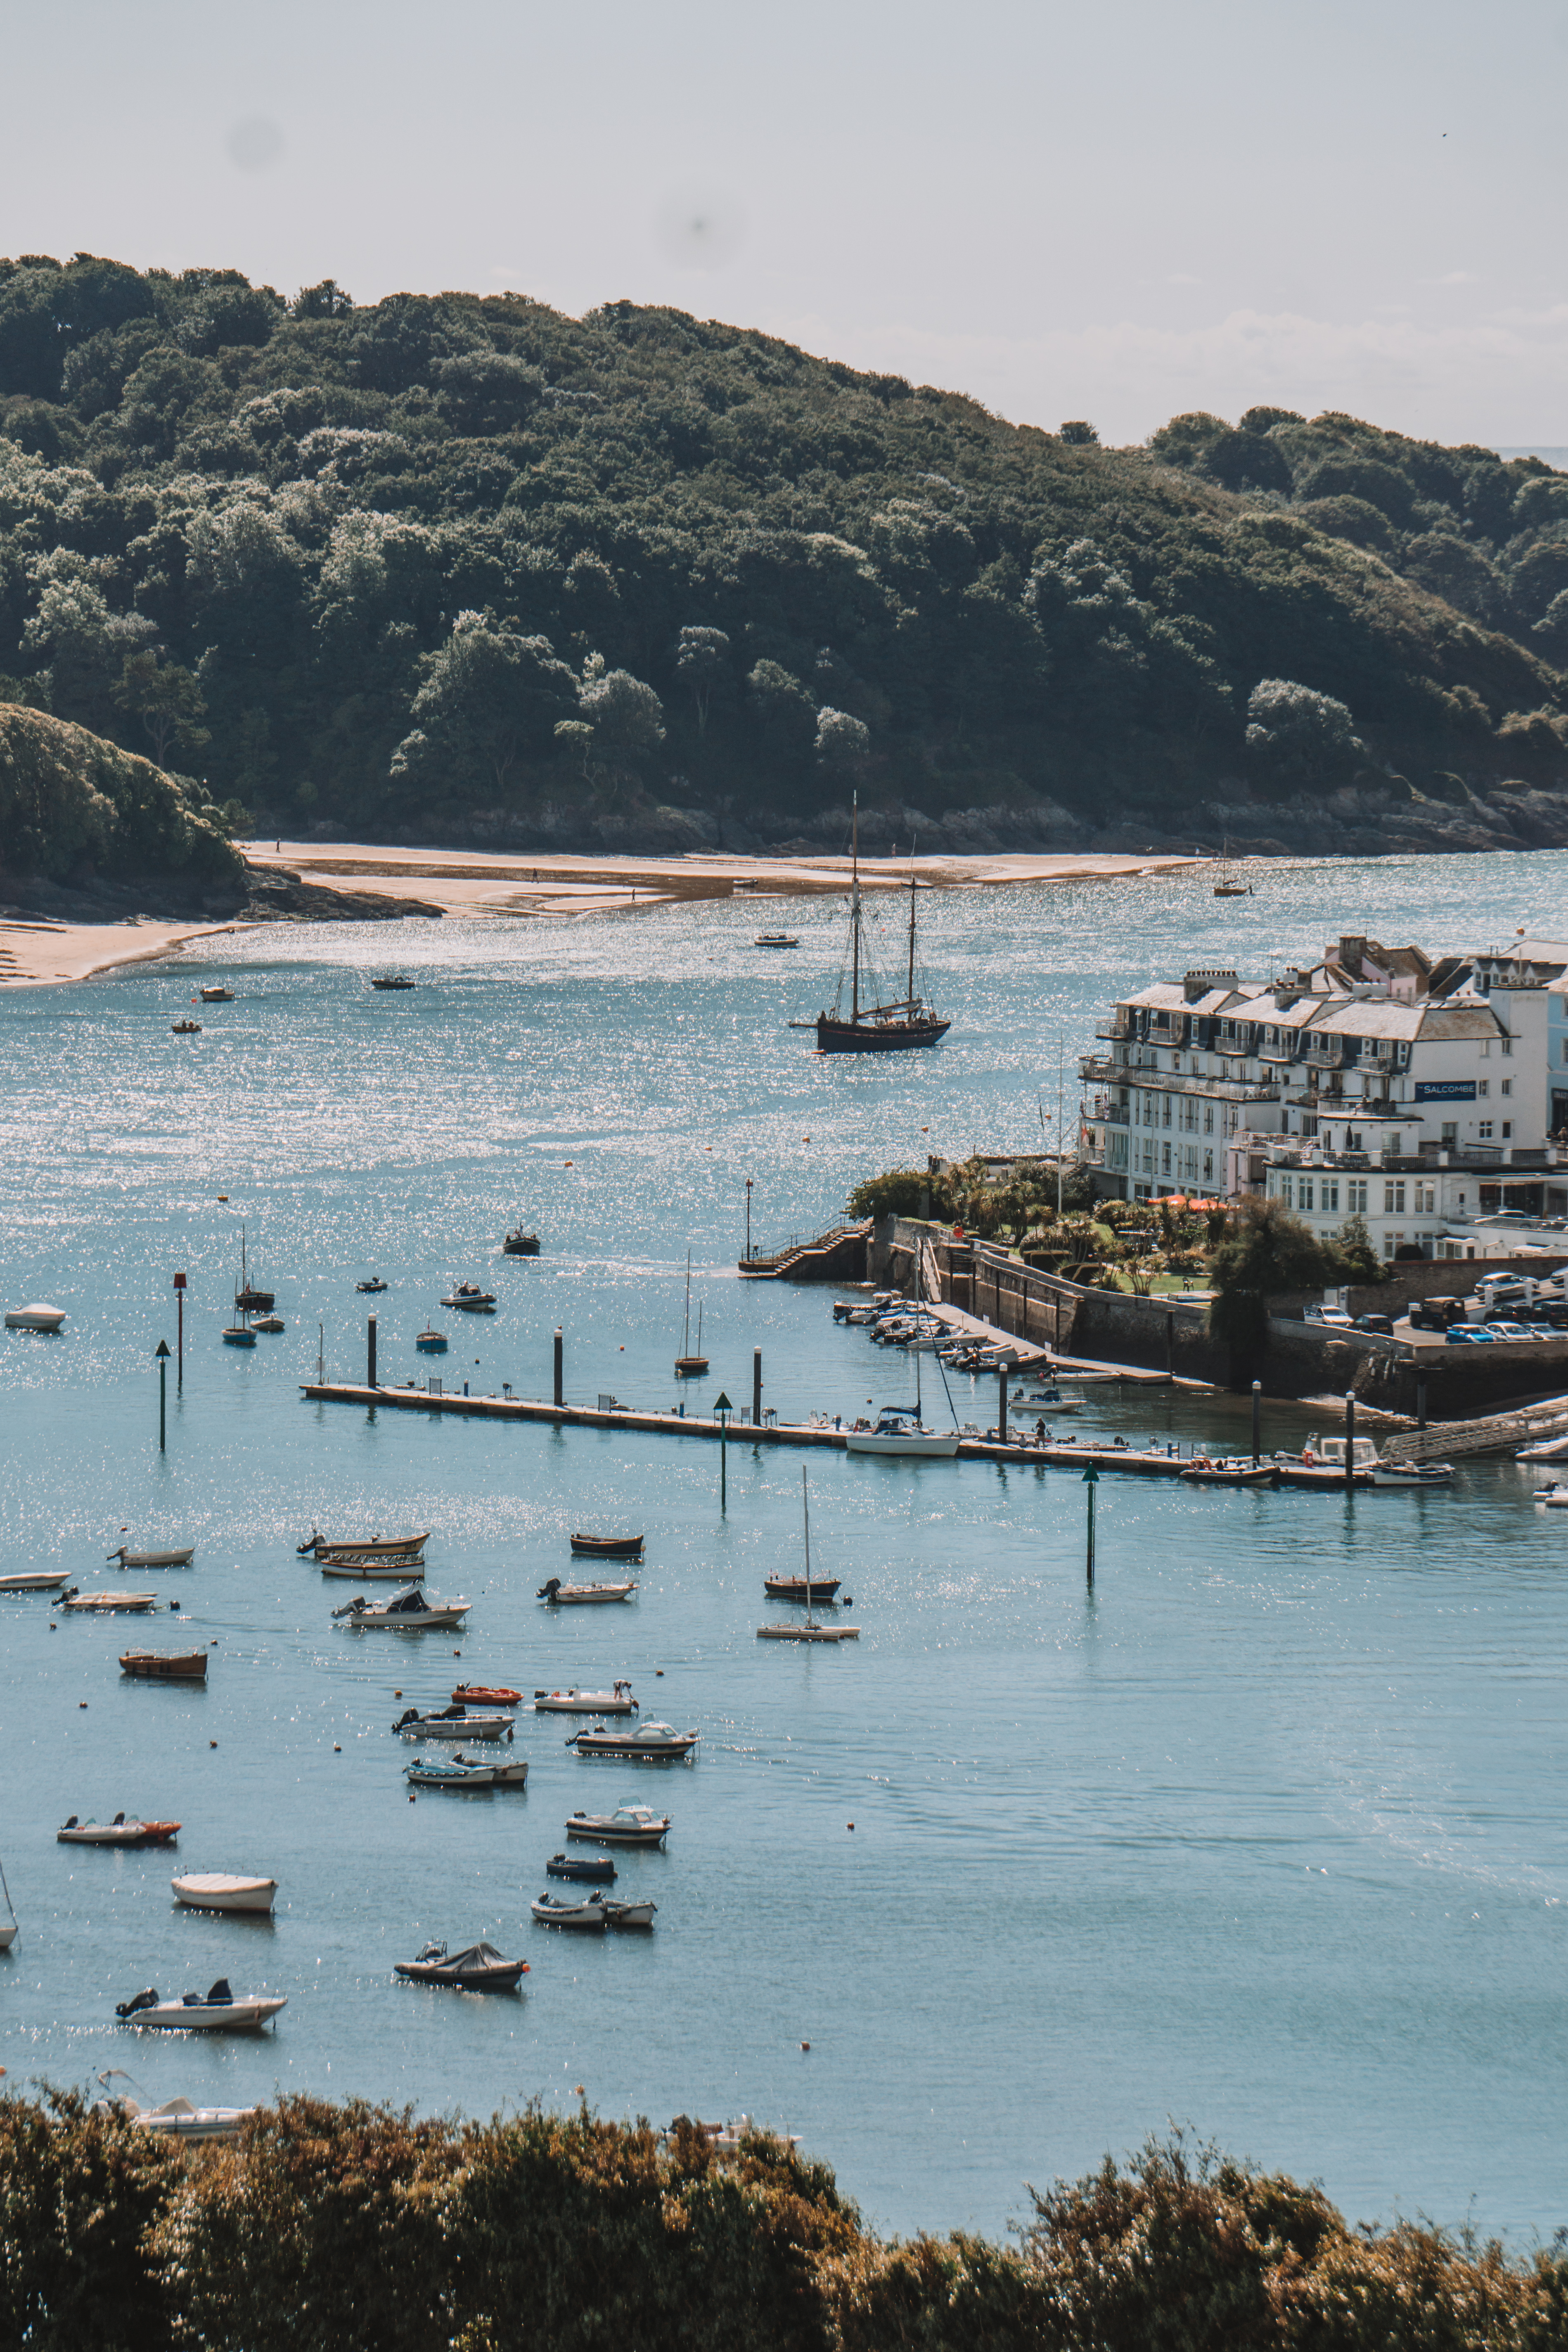 Overlooking the Kingsbridge estuary from Snapes Point, Salcombe